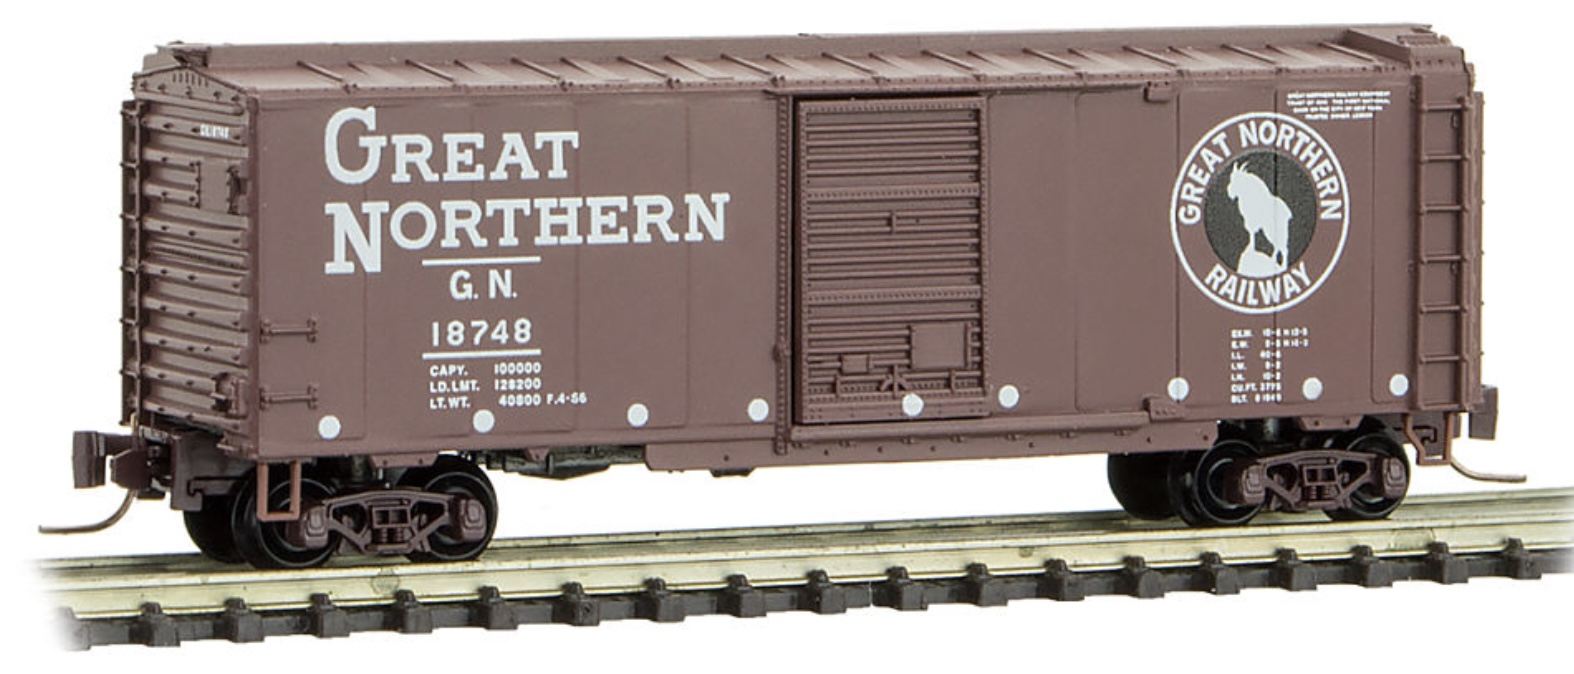 Z Scale - Micro-Trains - 500 00 960 - Boxcar, 40 Foot, PS-1 - Great Northern - 18748